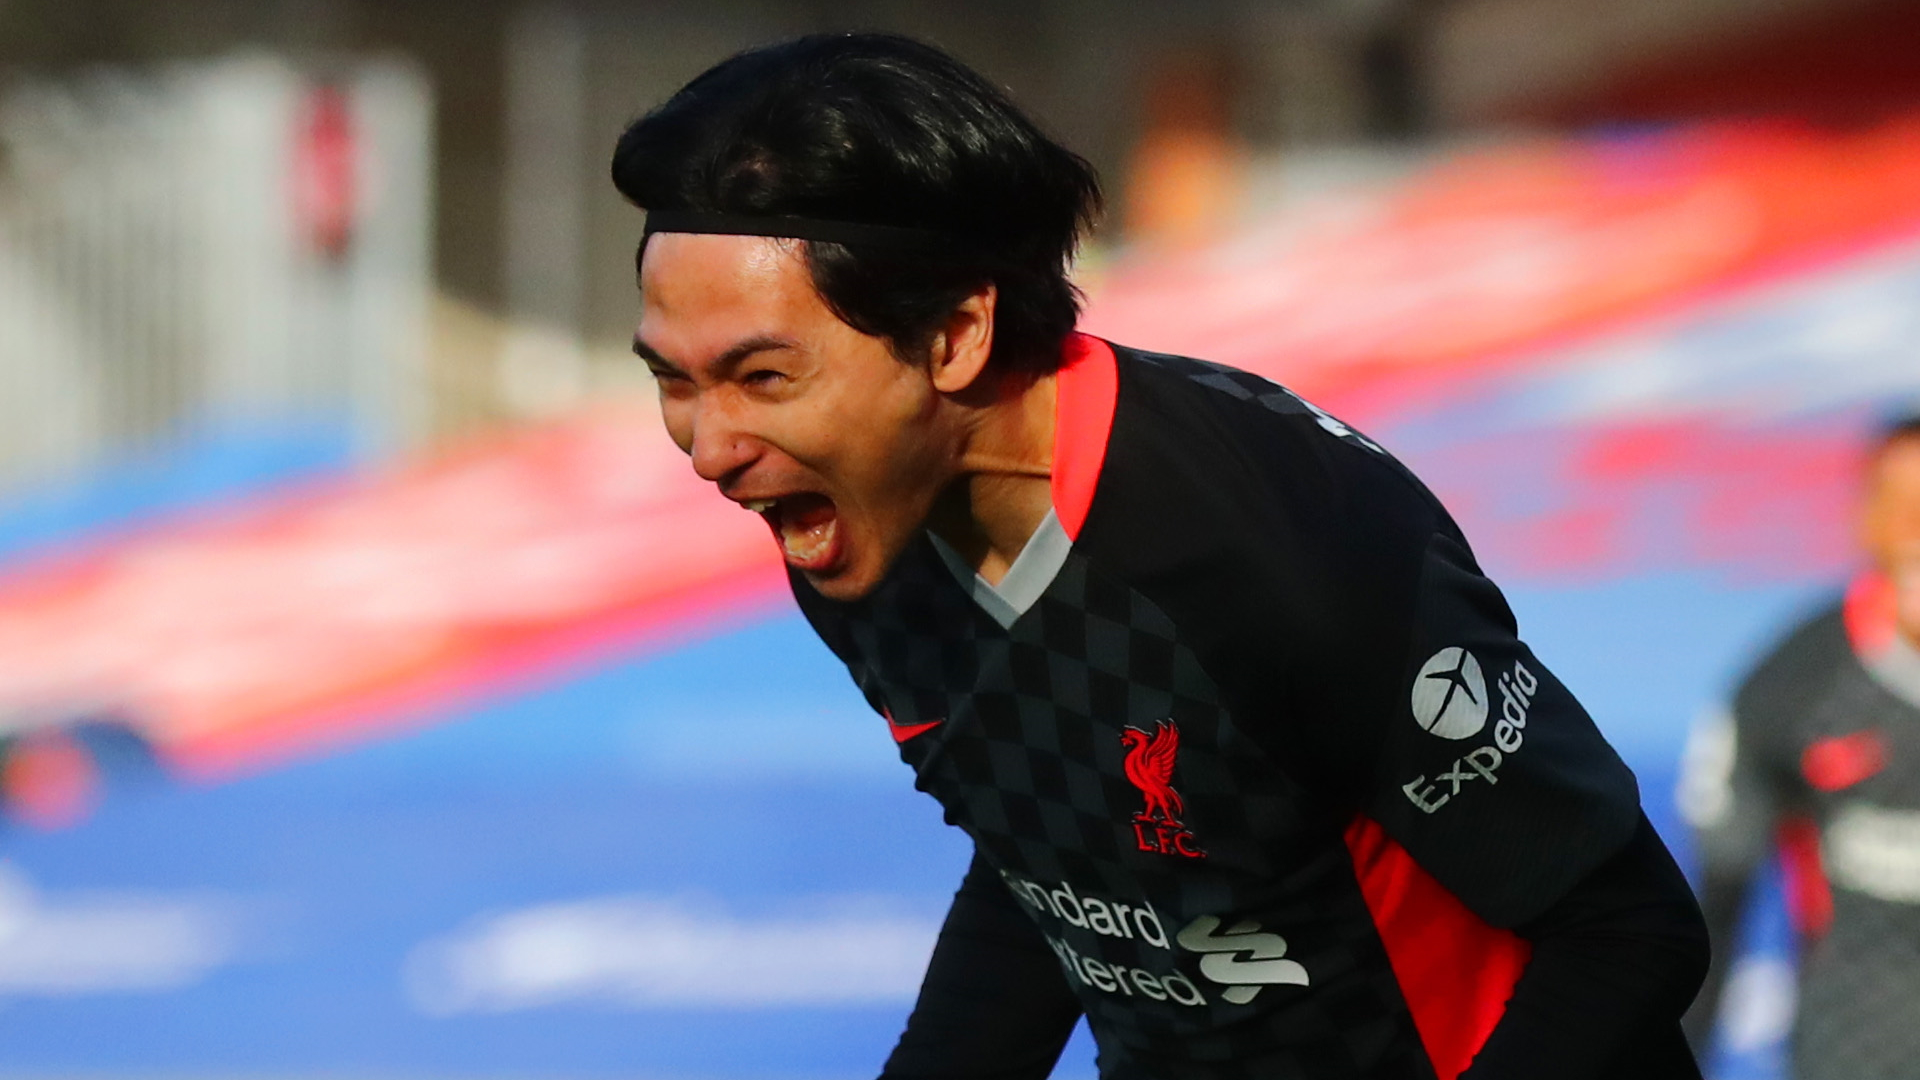 Minamino relieved to break Liverpool duck at 18th attempt and promises more to come